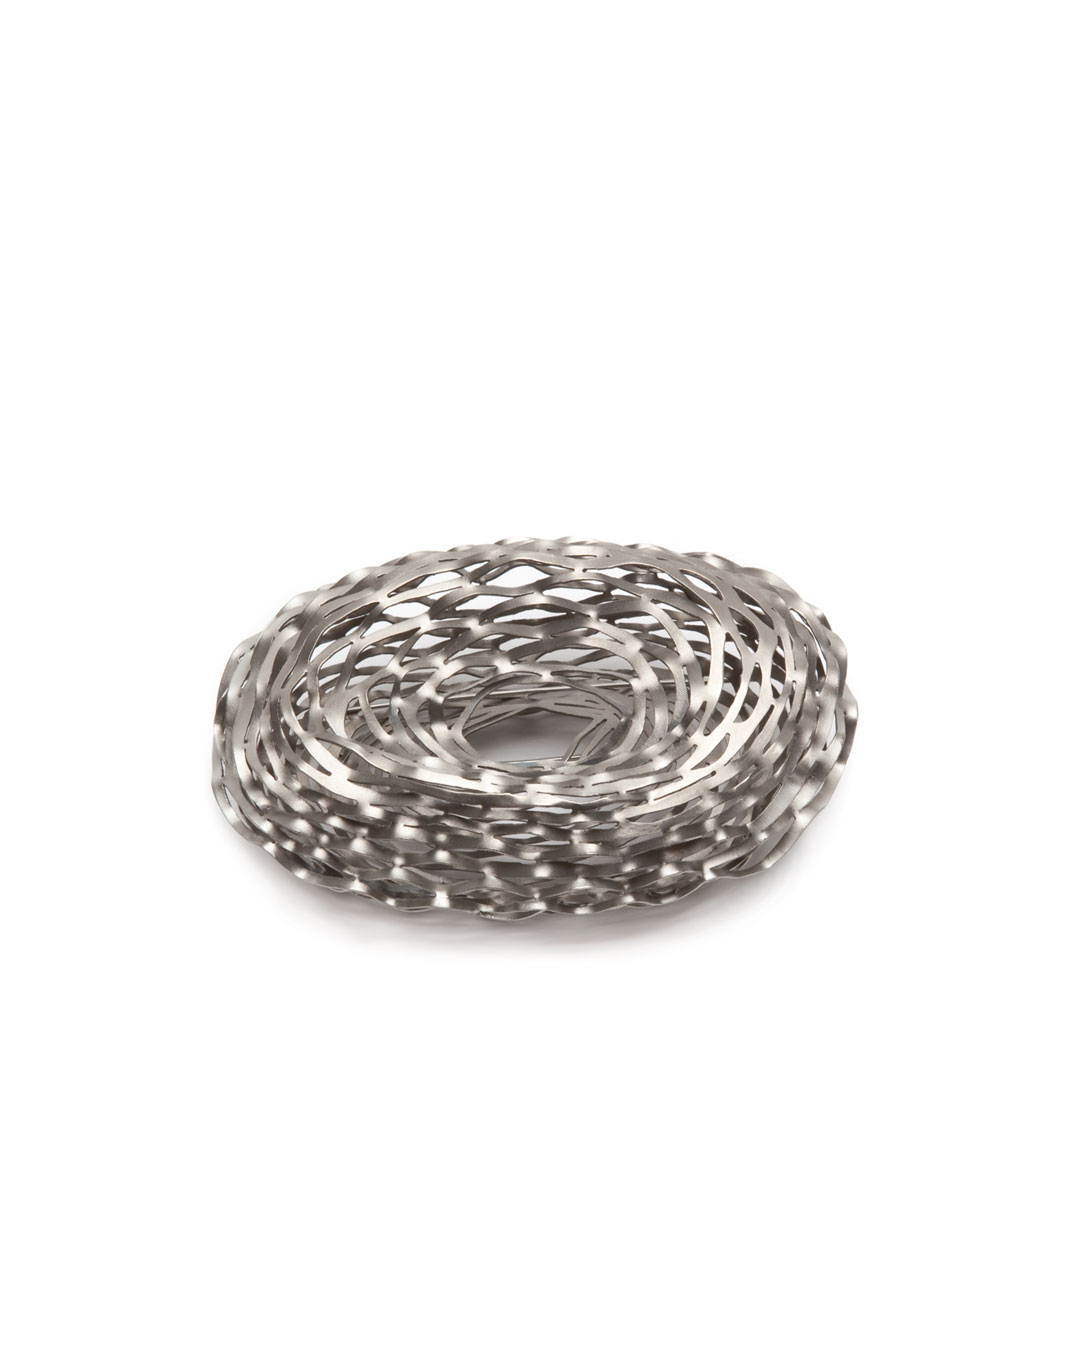 Antje Bräuer, untitled, 2010, brooch; titanium, stainless steel, 79 x 120 x 55 mm, €1020